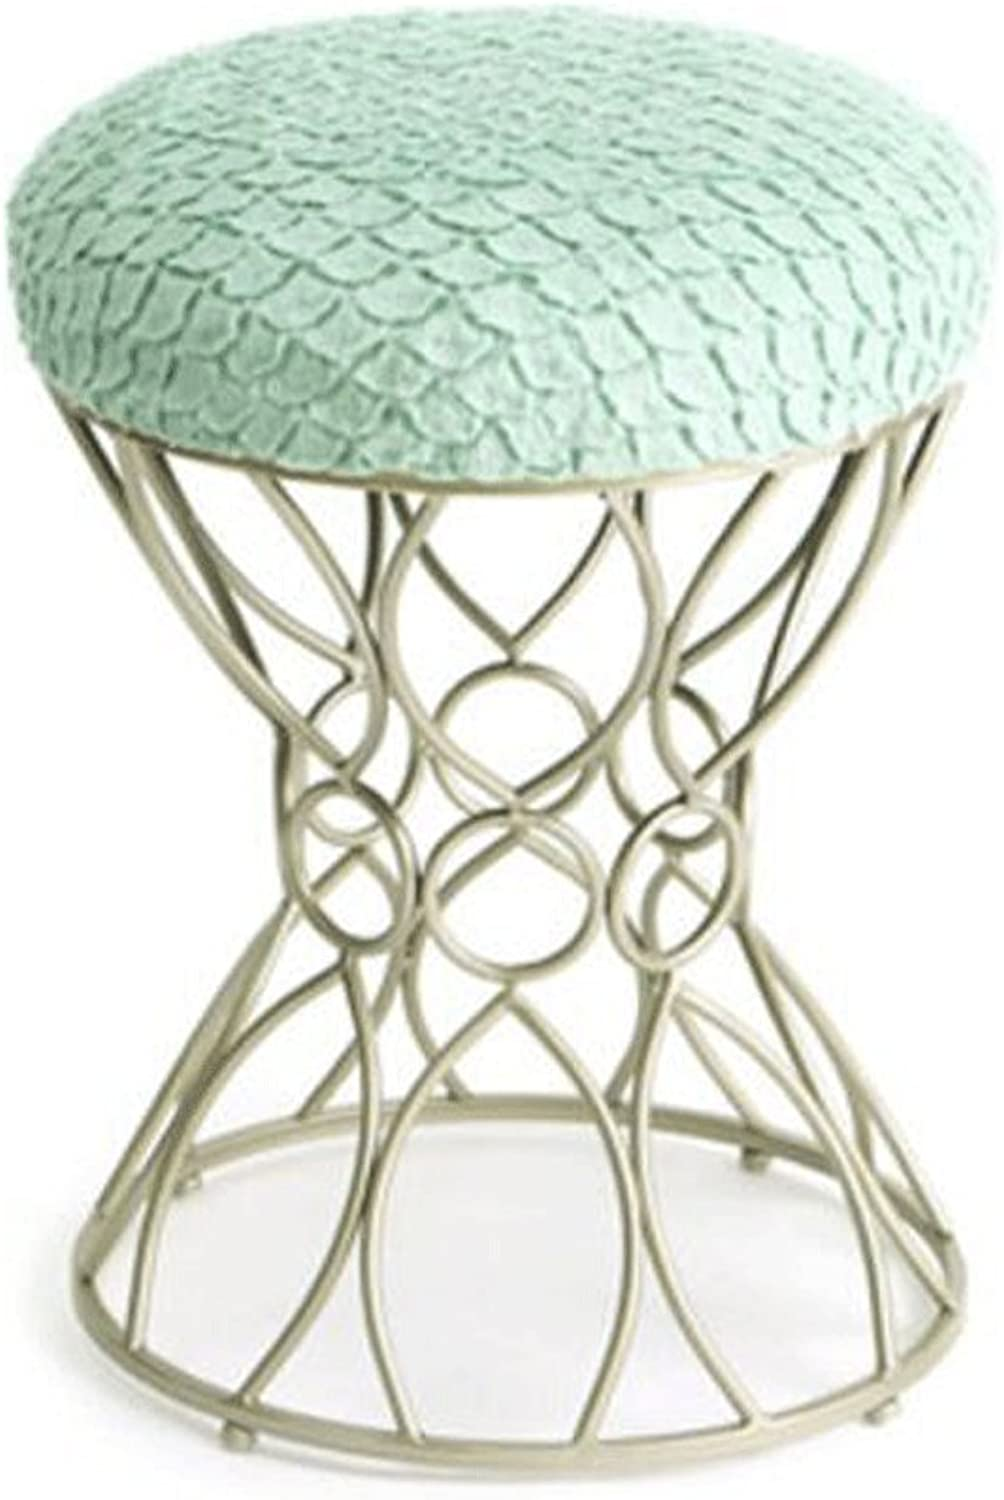 TXXM Barstools Comfortable Cotton Stool Metal Fashion Makeup Stool Dressing Stool Dining Chair Tea Table Stool H49CM (color   Green, Size   Silver)